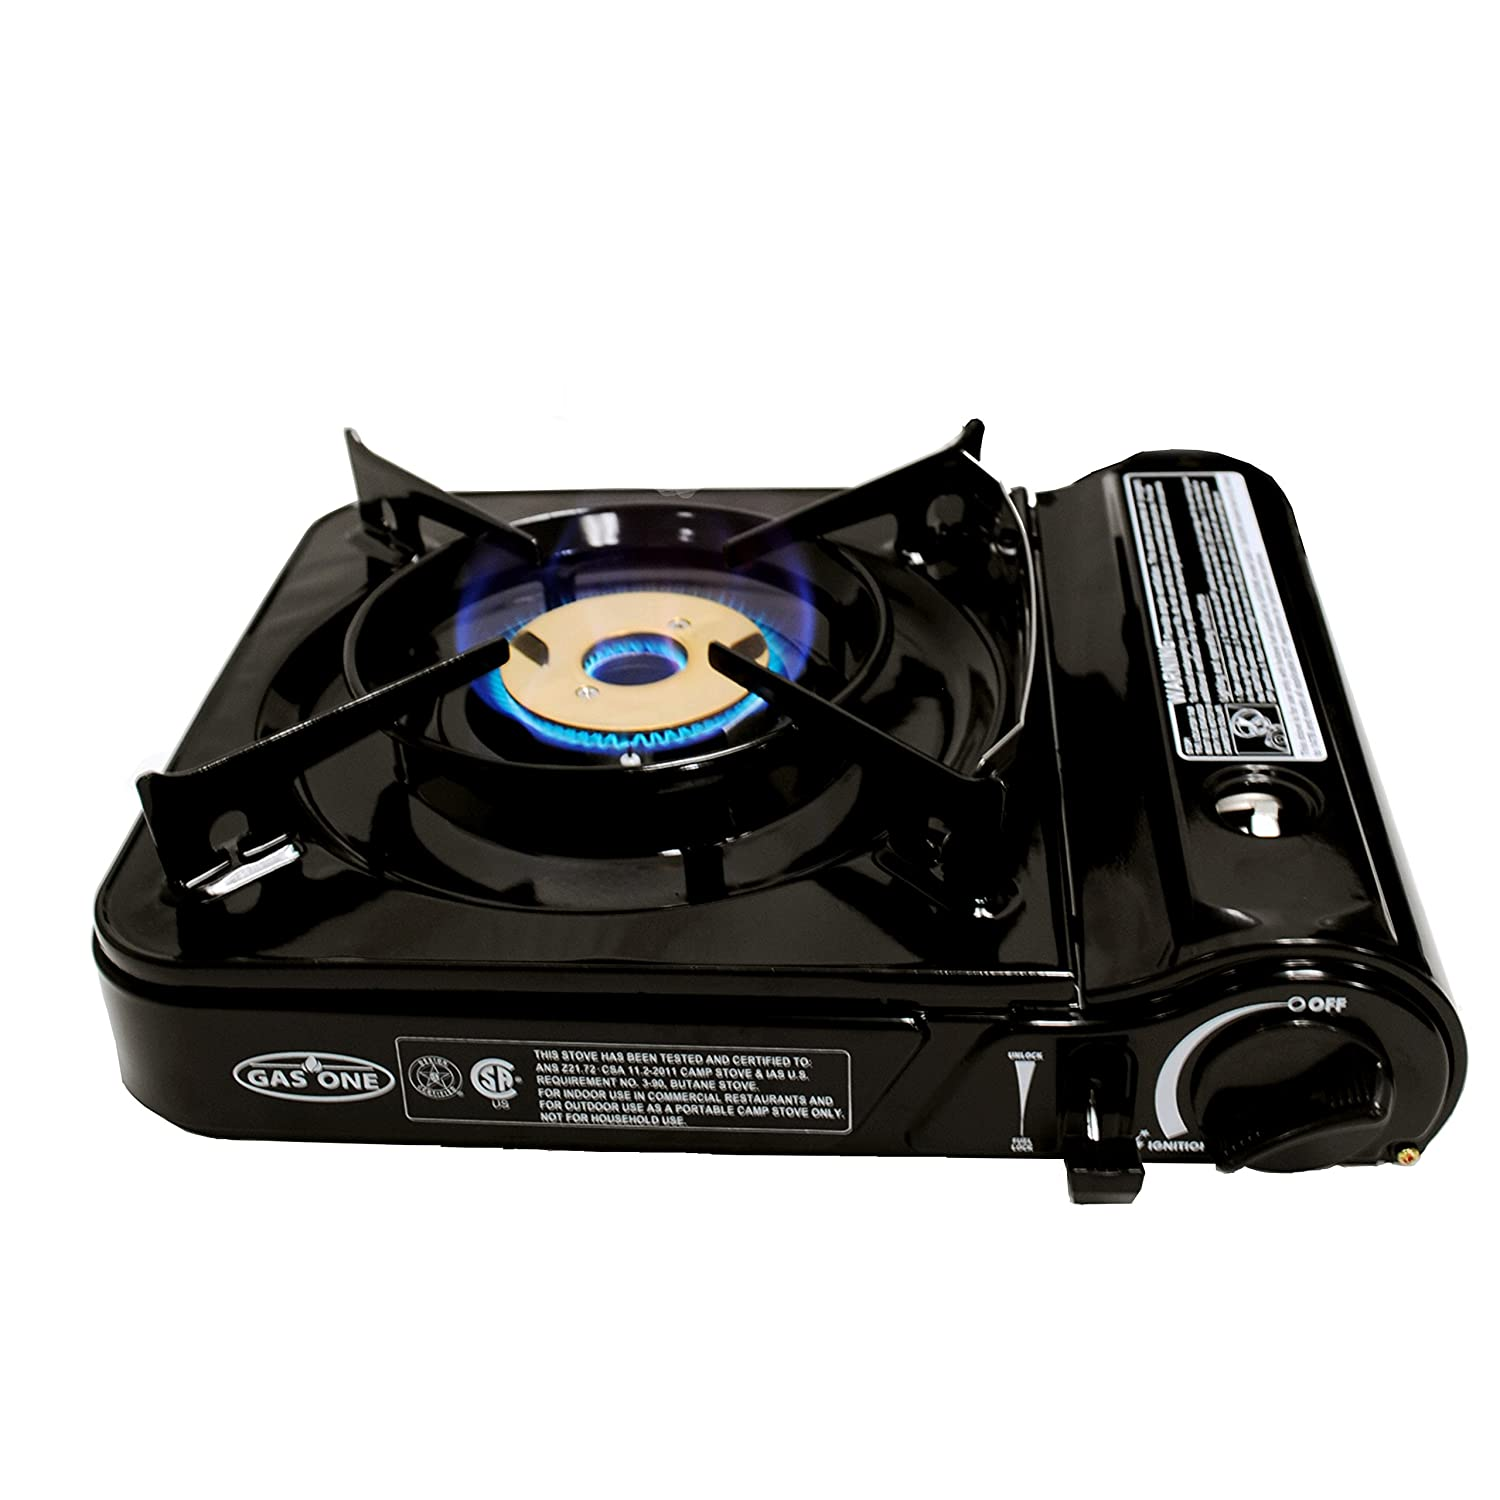 Amazon.com : GAS ONE GS-3000 Portable Gas Stove with Carrying Case ...